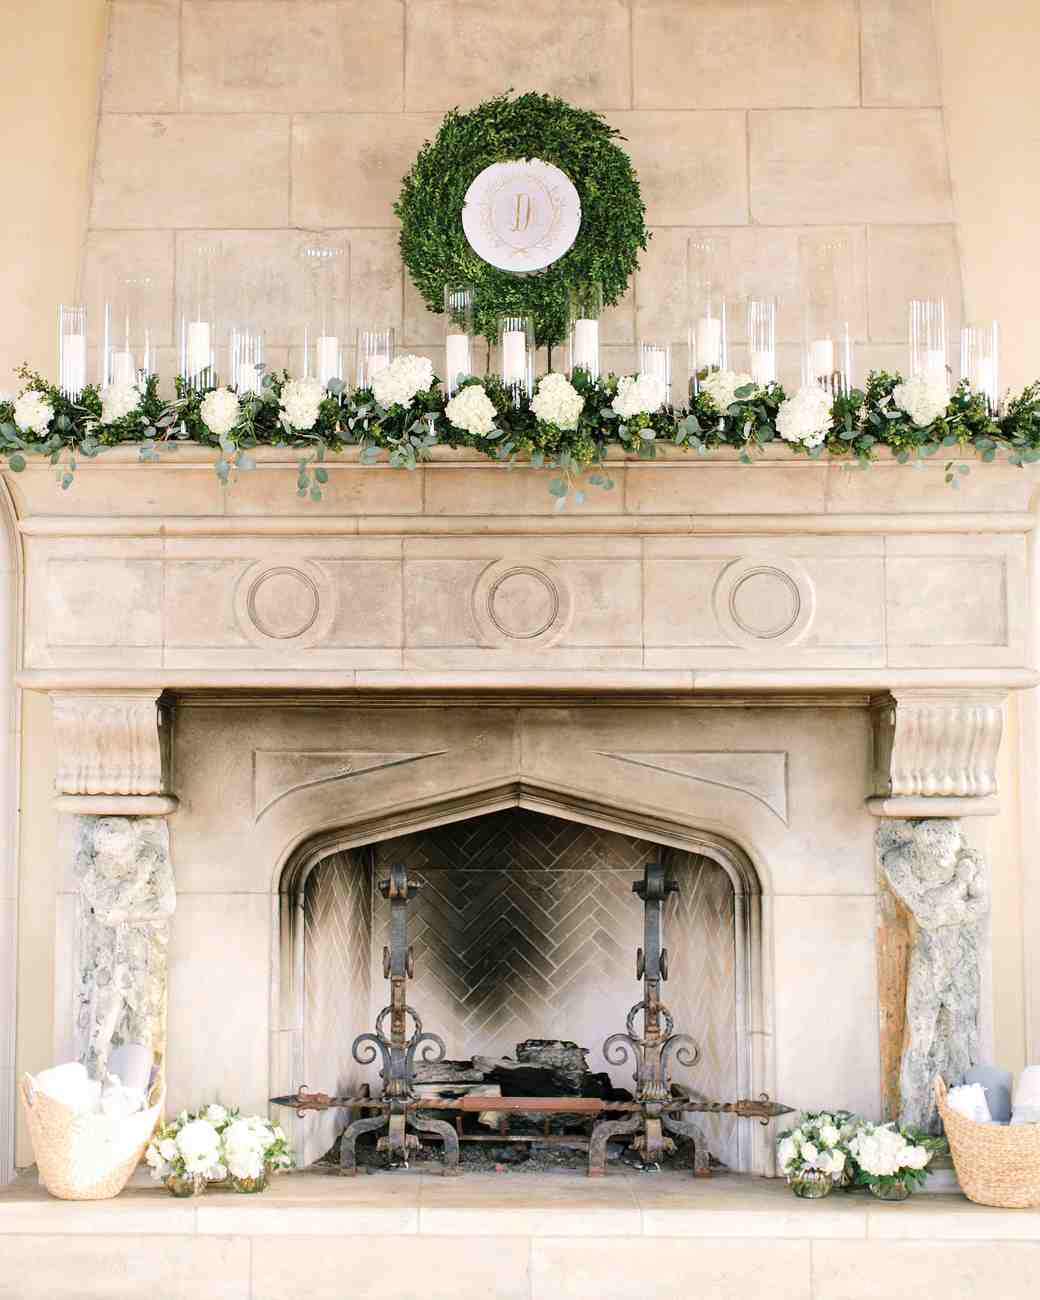 mmallory-diego-wedding-texas-fireplace-with-crest-082-s112628.jpg